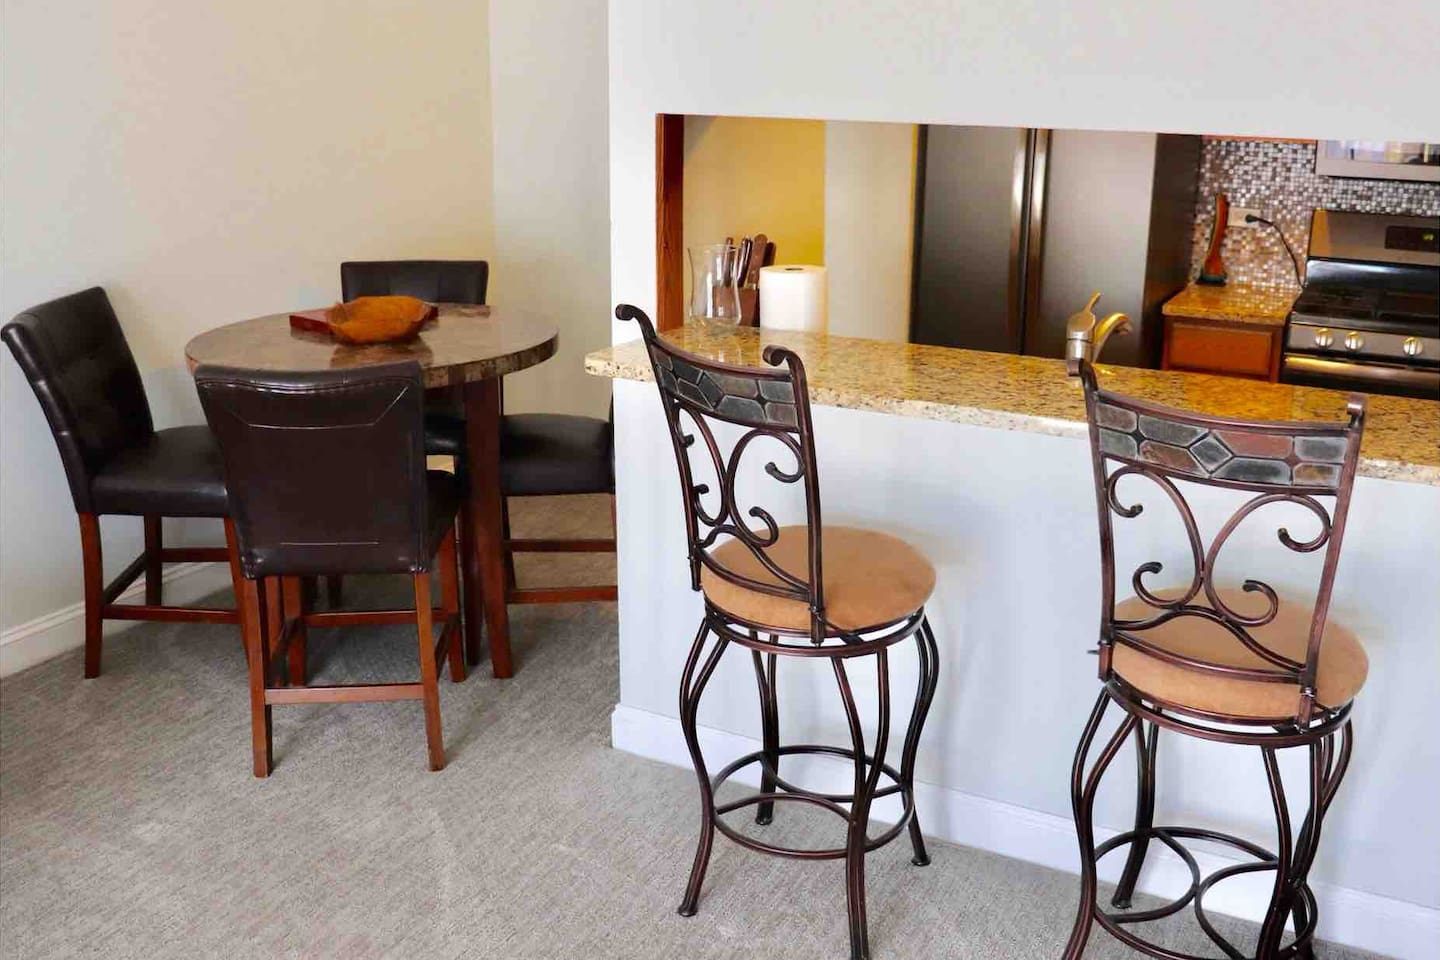 The dining room and kitchen view from the living room.